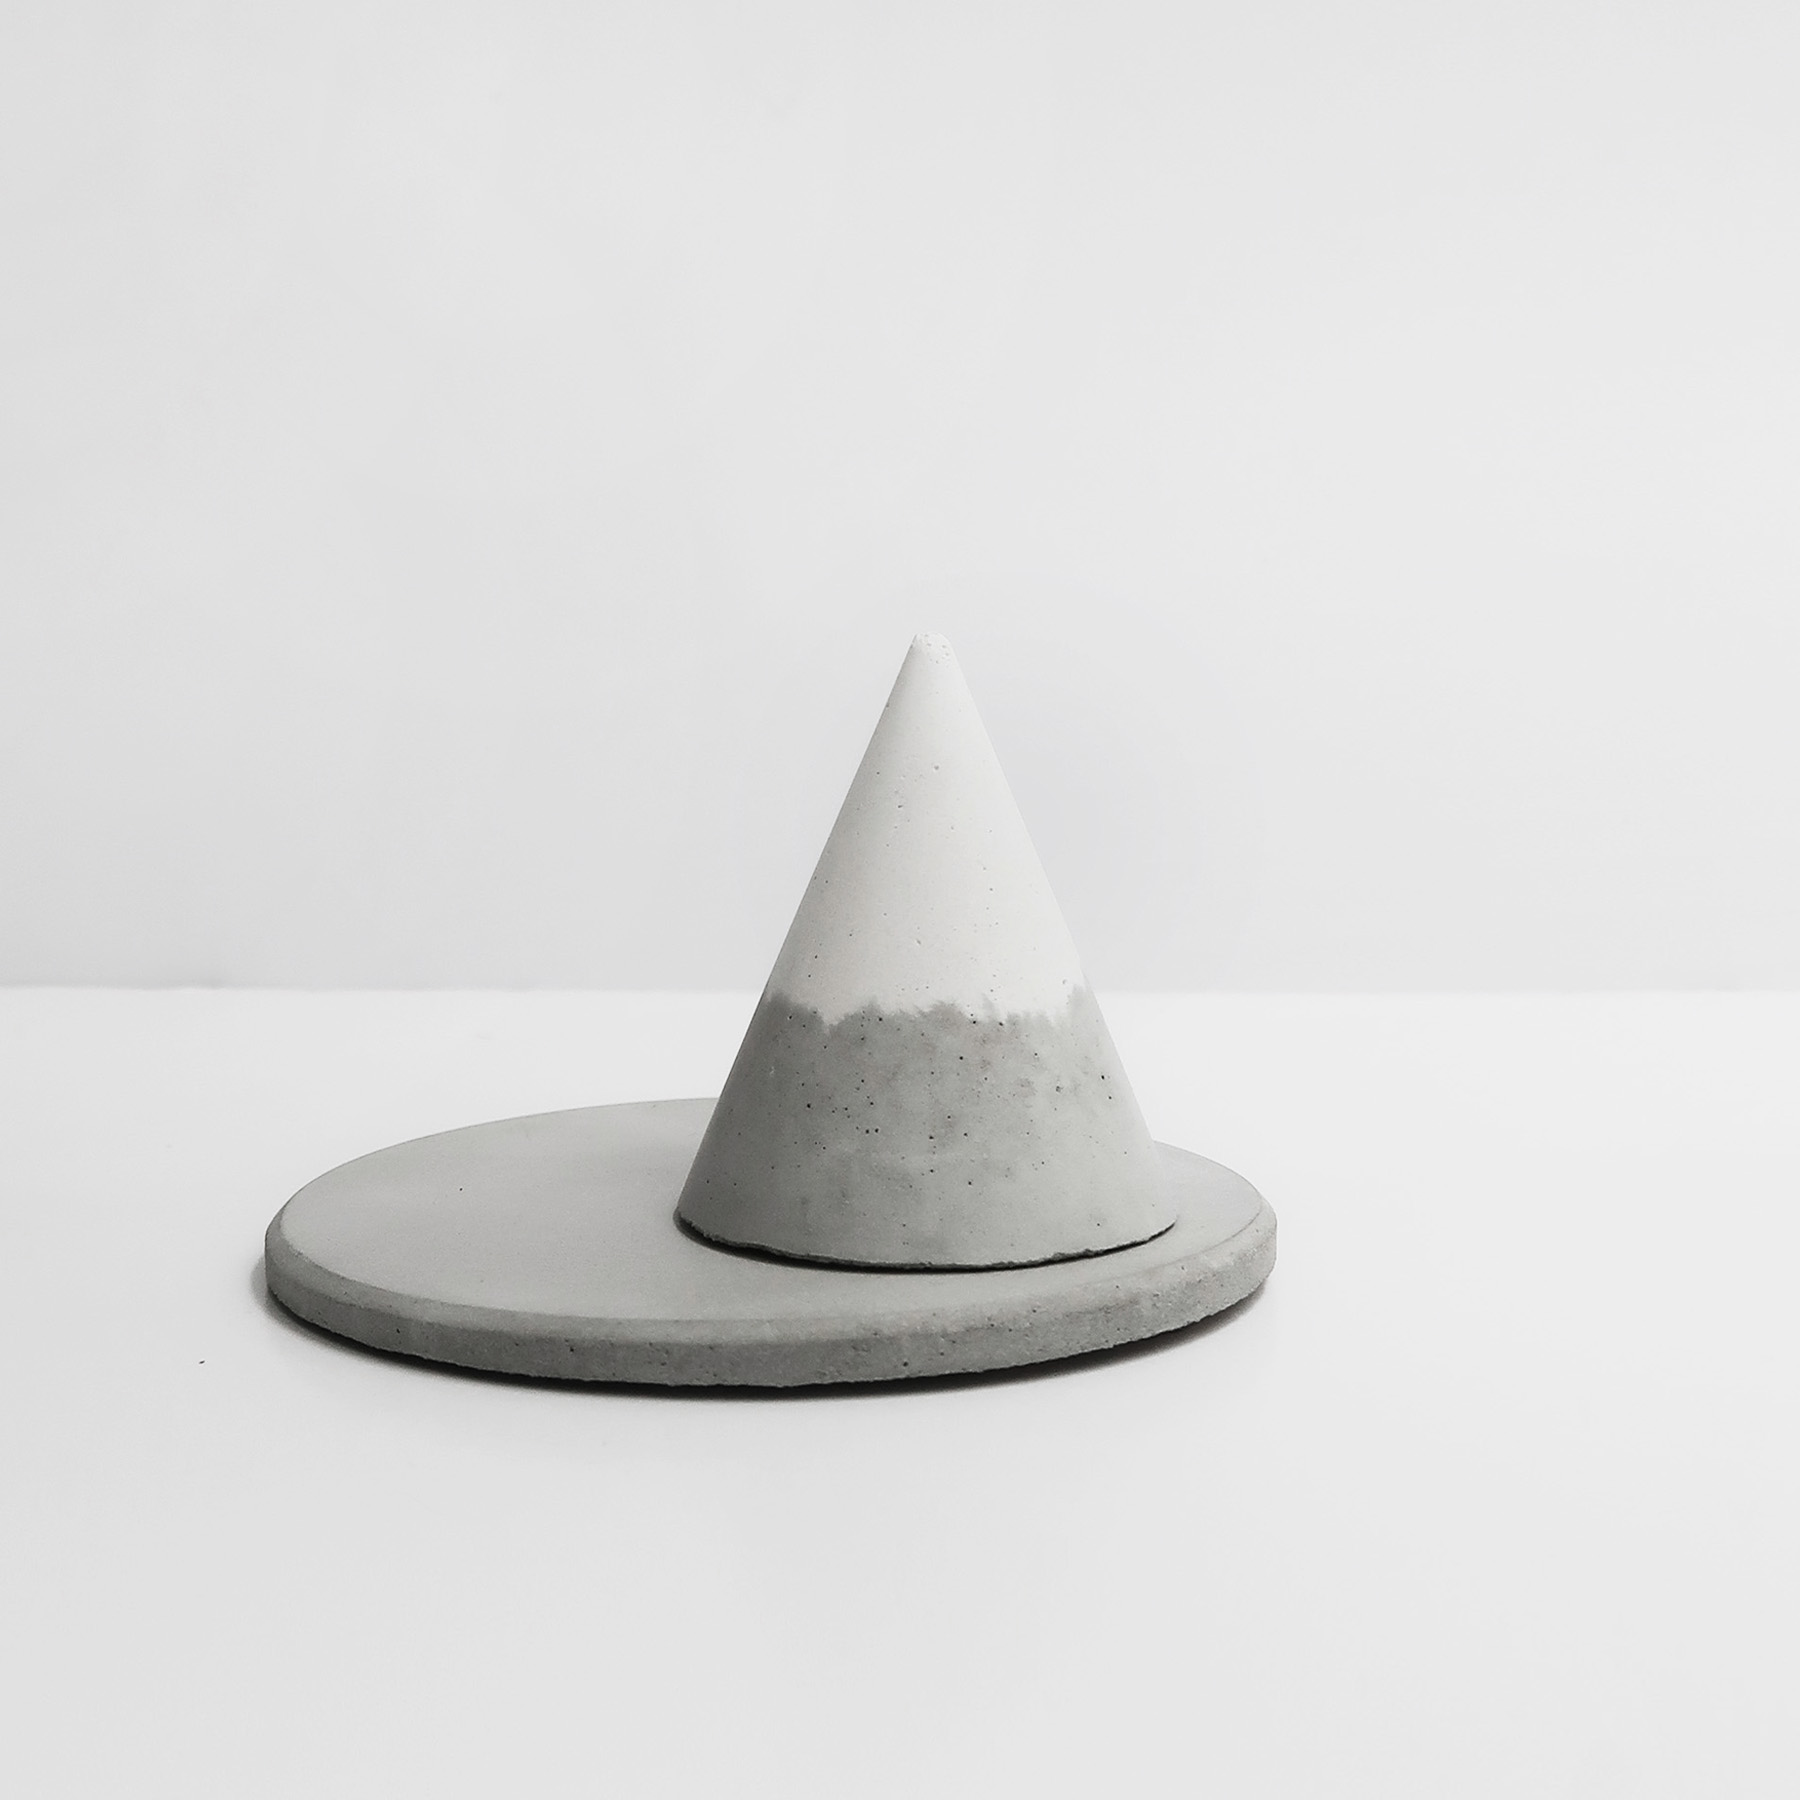 SNOWPACK 小山雪戒指座飾品盤收納組 / Concrete ring holders + trinket dish